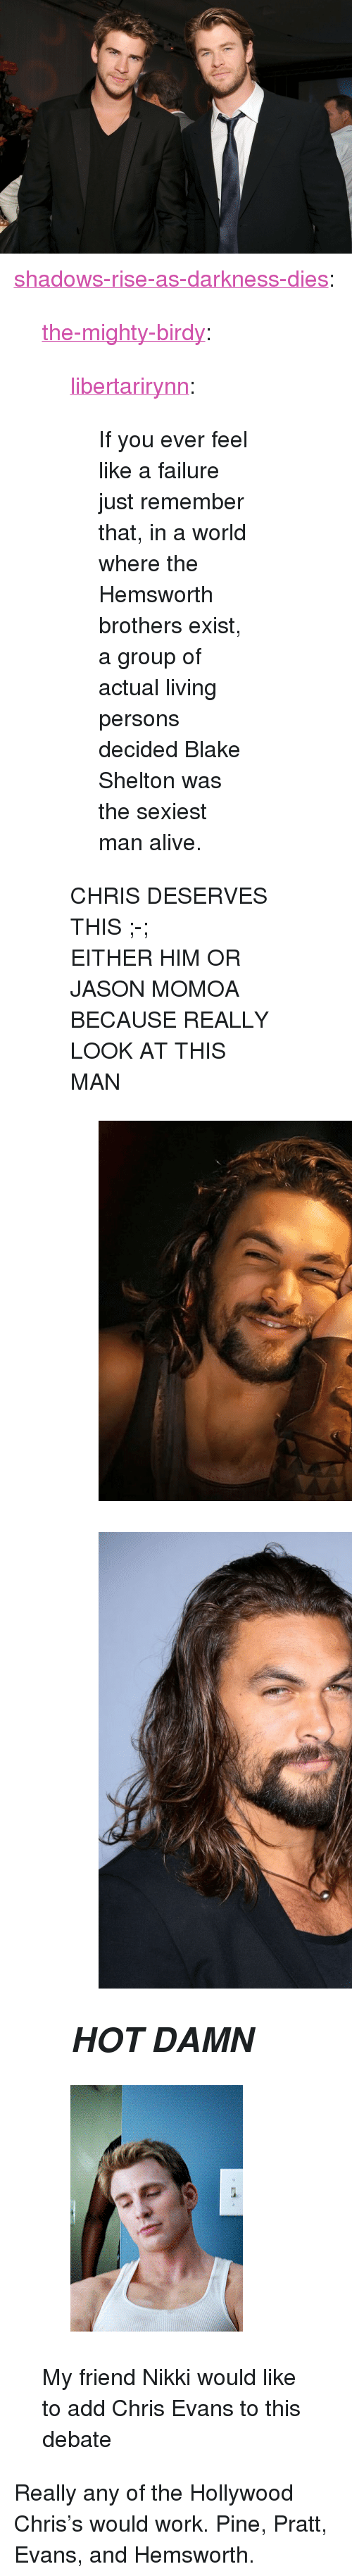 "Jason Momoa: <p><a href=""http://shadows-rise-as-darkness-dies.tumblr.com/post/167745949056/the-mighty-birdy-libertarirynn-if-you-ever"" class=""tumblr_blog"">shadows-rise-as-darkness-dies</a>:</p>  <blockquote><p><a href=""http://the-mighty-birdy.tumblr.com/post/167745856758/libertarirynn-if-you-ever-feel-like-a-failure"" class=""tumblr_blog"">the-mighty-birdy</a>:</p><blockquote> <p><a href=""https://libertarirynn.tumblr.com/post/167745771059/if-you-ever-feel-like-a-failure-just-remember"" class=""tumblr_blog"">libertarirynn</a>:</p> <blockquote><p>If you ever feel like a failure just remember that, in a world where the Hemsworth brothers exist, a group of actual living persons decided Blake Shelton was the sexiest man alive.</p></blockquote> <p>CHRIS DESERVES THIS ;-;</p> <p>EITHER HIM OR JASON MOMOA BECAUSE REALLY LOOK AT THIS MAN</p> <figure class=""tmblr-full"" data-orig-height=""736"" data-orig-width=""736""><img src=""https://78.media.tumblr.com/55fe0b9e3ea926d7f95e200874c496de/tumblr_inline_ozselnIQaI1unknuk_540.png"" data-orig-height=""736"" data-orig-width=""736""/></figure><figure class=""tmblr-full"" data-orig-height=""864"" data-orig-width=""720""><img src=""https://78.media.tumblr.com/2ca3c23d1c97651f09552460b50e881c/tumblr_inline_ozsemijNCB1unknuk_540.png"" data-orig-height=""864"" data-orig-width=""720""/></figure><h2><i><b>HOT DAMN</b></i></h2> </blockquote> <figure class=""tmblr-full"" data-orig-height=""350"" data-orig-width=""245"" data-tumblr-attribution=""lolawinchesterr:jsJxA7RegaaWXYNq1iOqGg:ZkDt6f2Pq7ONP""><img src=""https://78.media.tumblr.com/6a6809b7cd1acd1bfb1e87d5d93fdfab/tumblr_ow0y23ni7z1w0enivo1_250.gif"" data-orig-height=""350"" data-orig-width=""245""/></figure><p>My friend Nikki would like to add Chris Evans to this debate</p></blockquote>  <p>Really any of the Hollywood Chris's would work. Pine, Pratt, Evans, and Hemsworth.</p>"